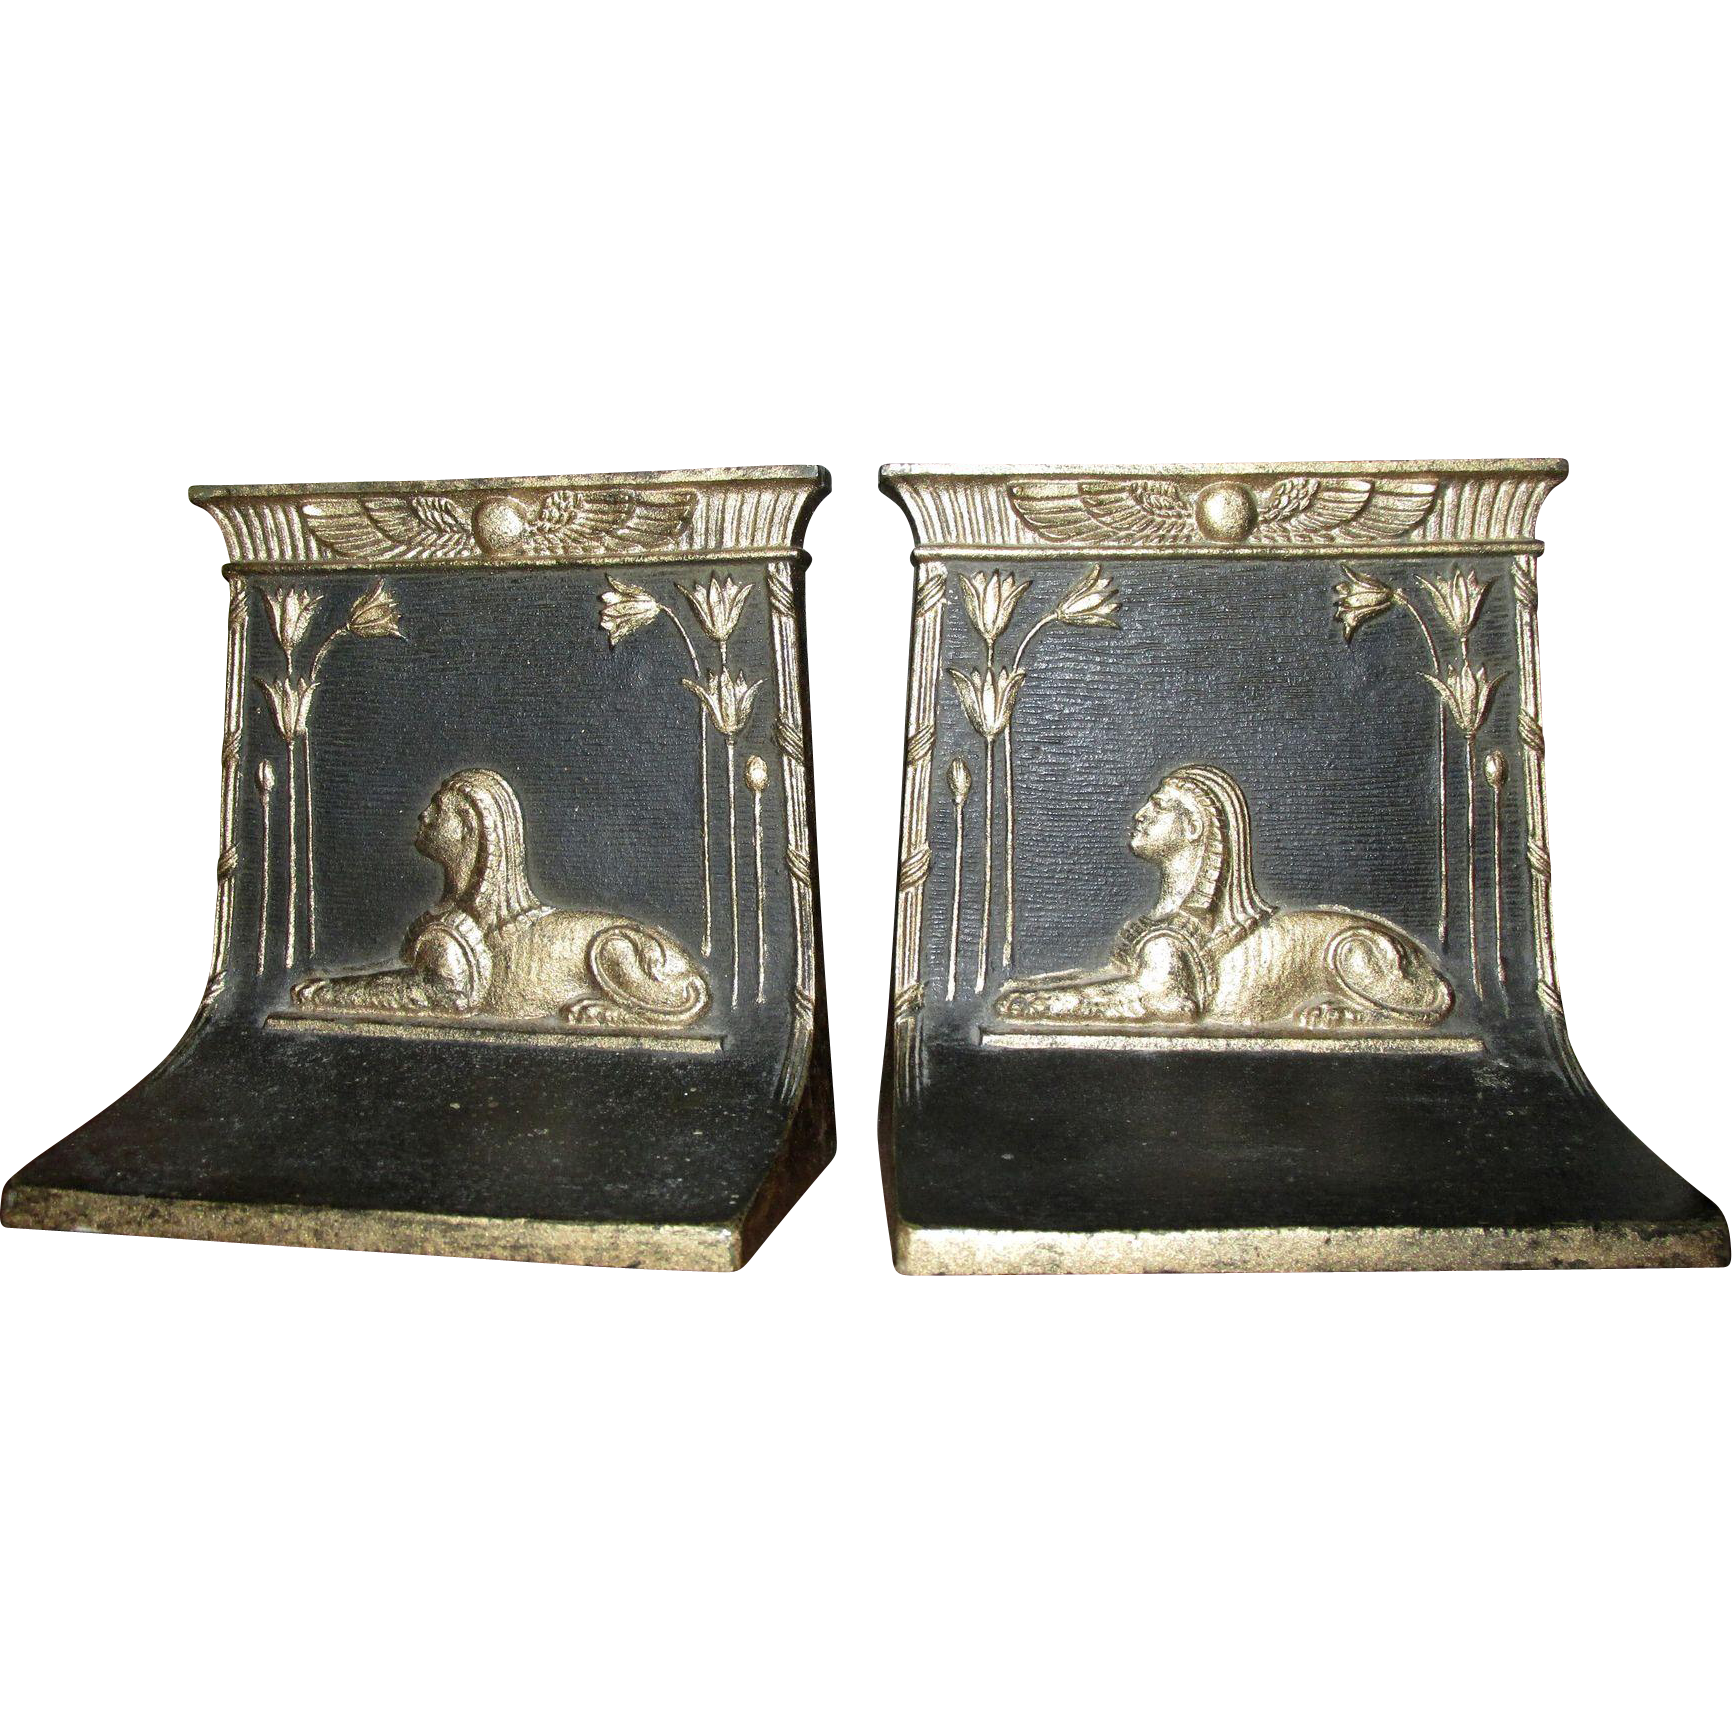 Vintage Bradley & Hubbard Stamped Art Deco 1920s Egyptian Revival Sphinx Bookends